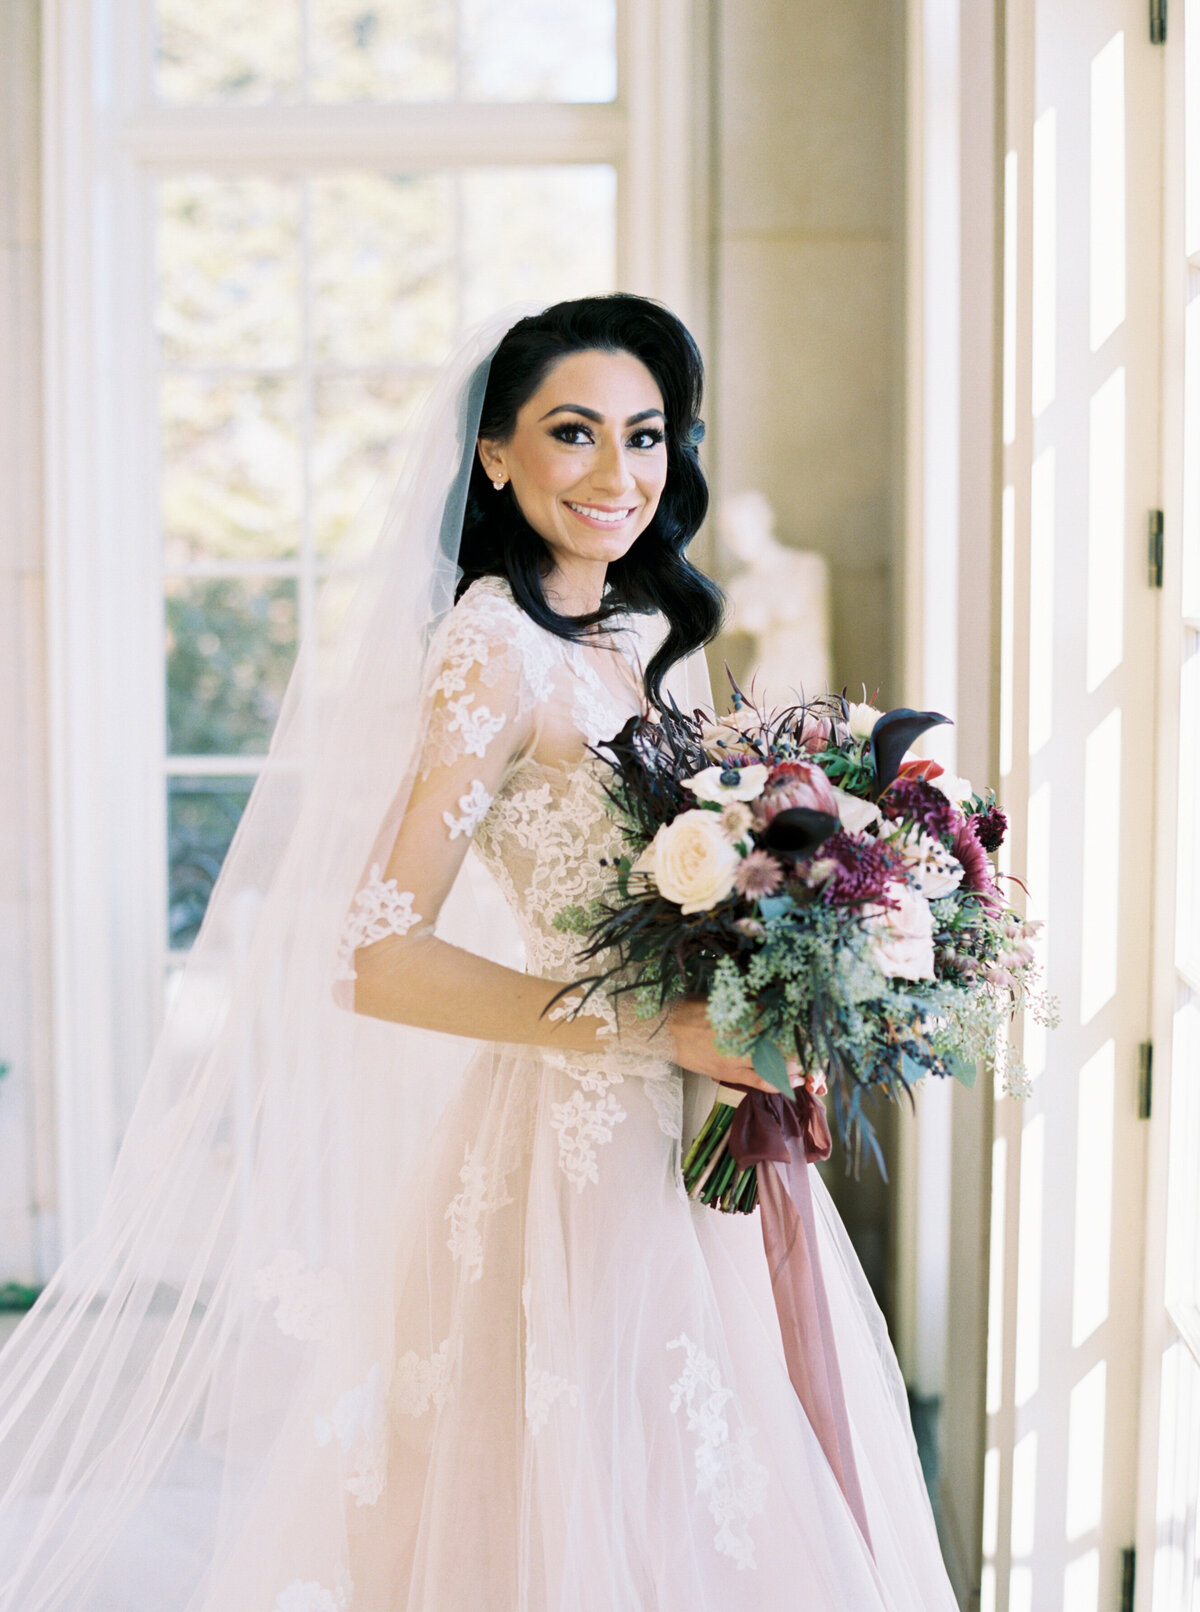 Kaylea Moreno_wedding gallery - Rami-Cassandra-Wedding-krmorenophoto-191